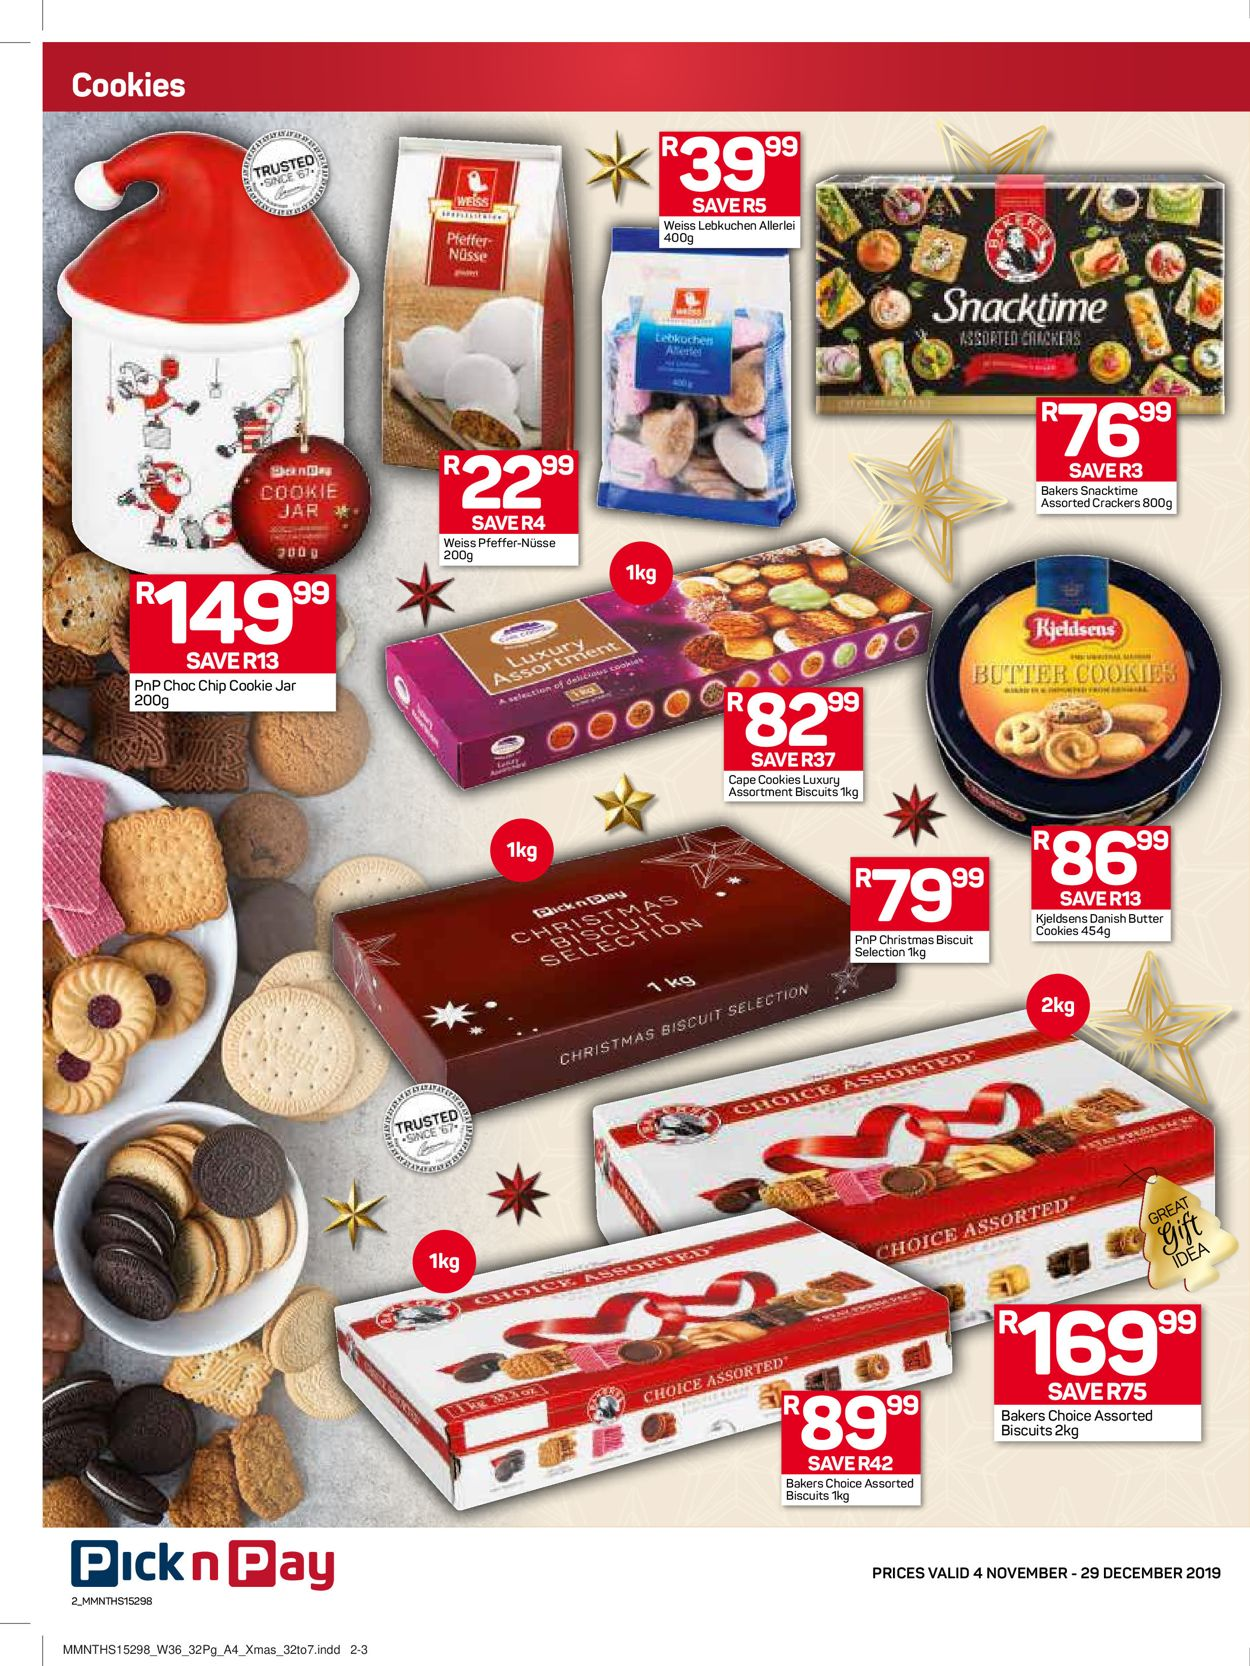 Pick n Pay Catalogue - 2019/11/04-2019/12/29 (Page 3)